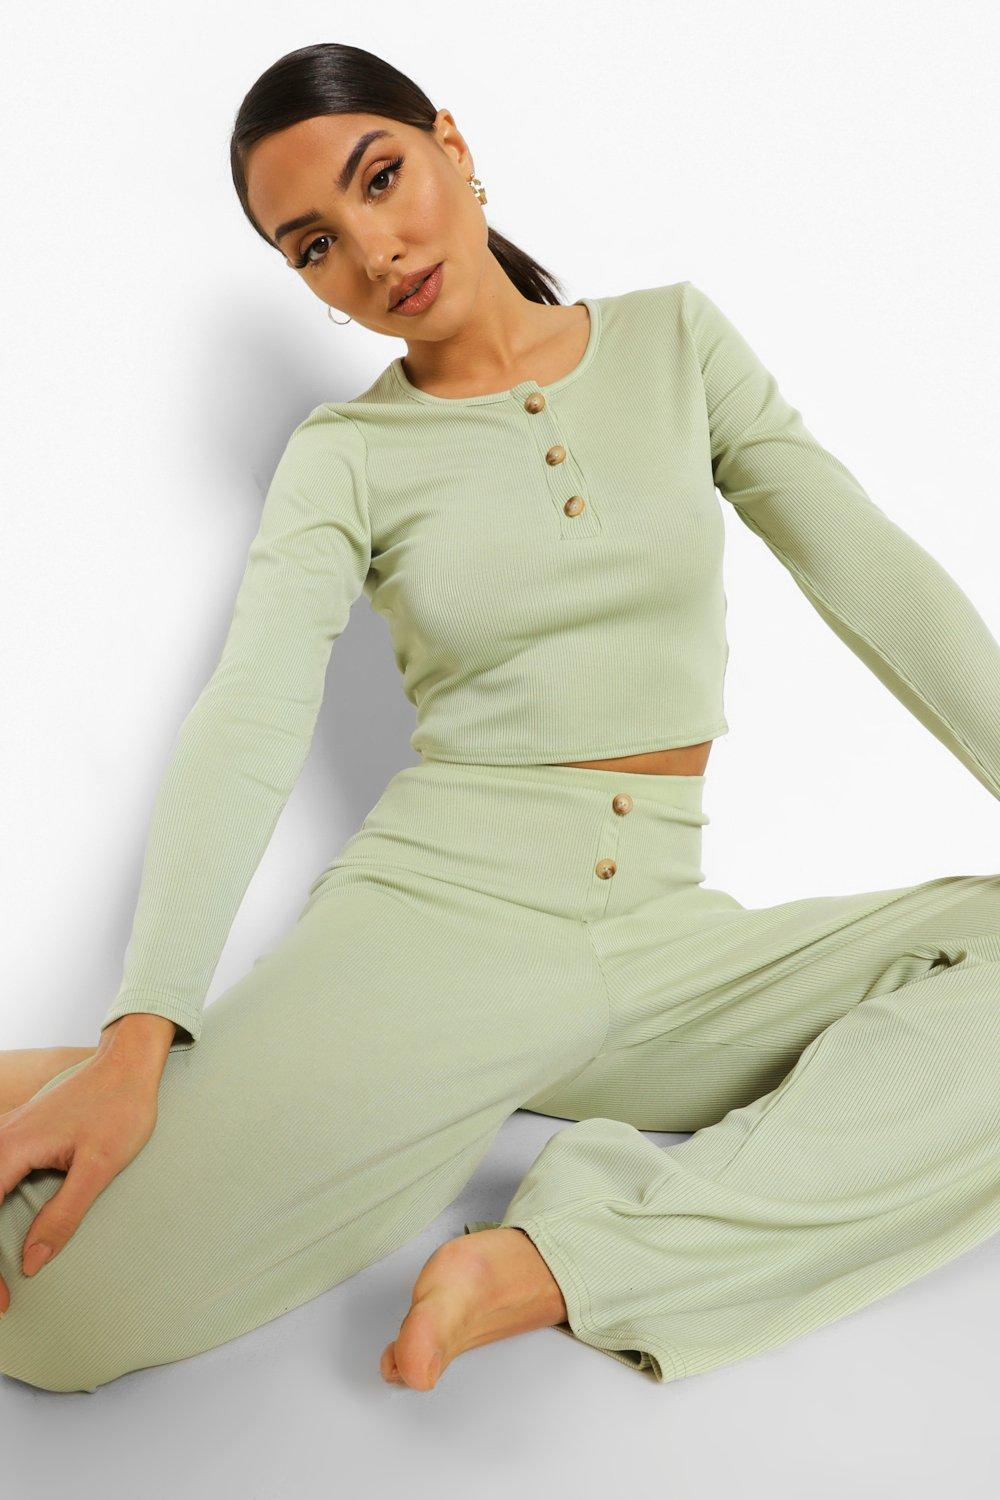 70s Clothes | Hippie Clothes & Outfits Womens Rib Button Front Wide Leg Lounge Set - Green - 12 $25.00 AT vintagedancer.com